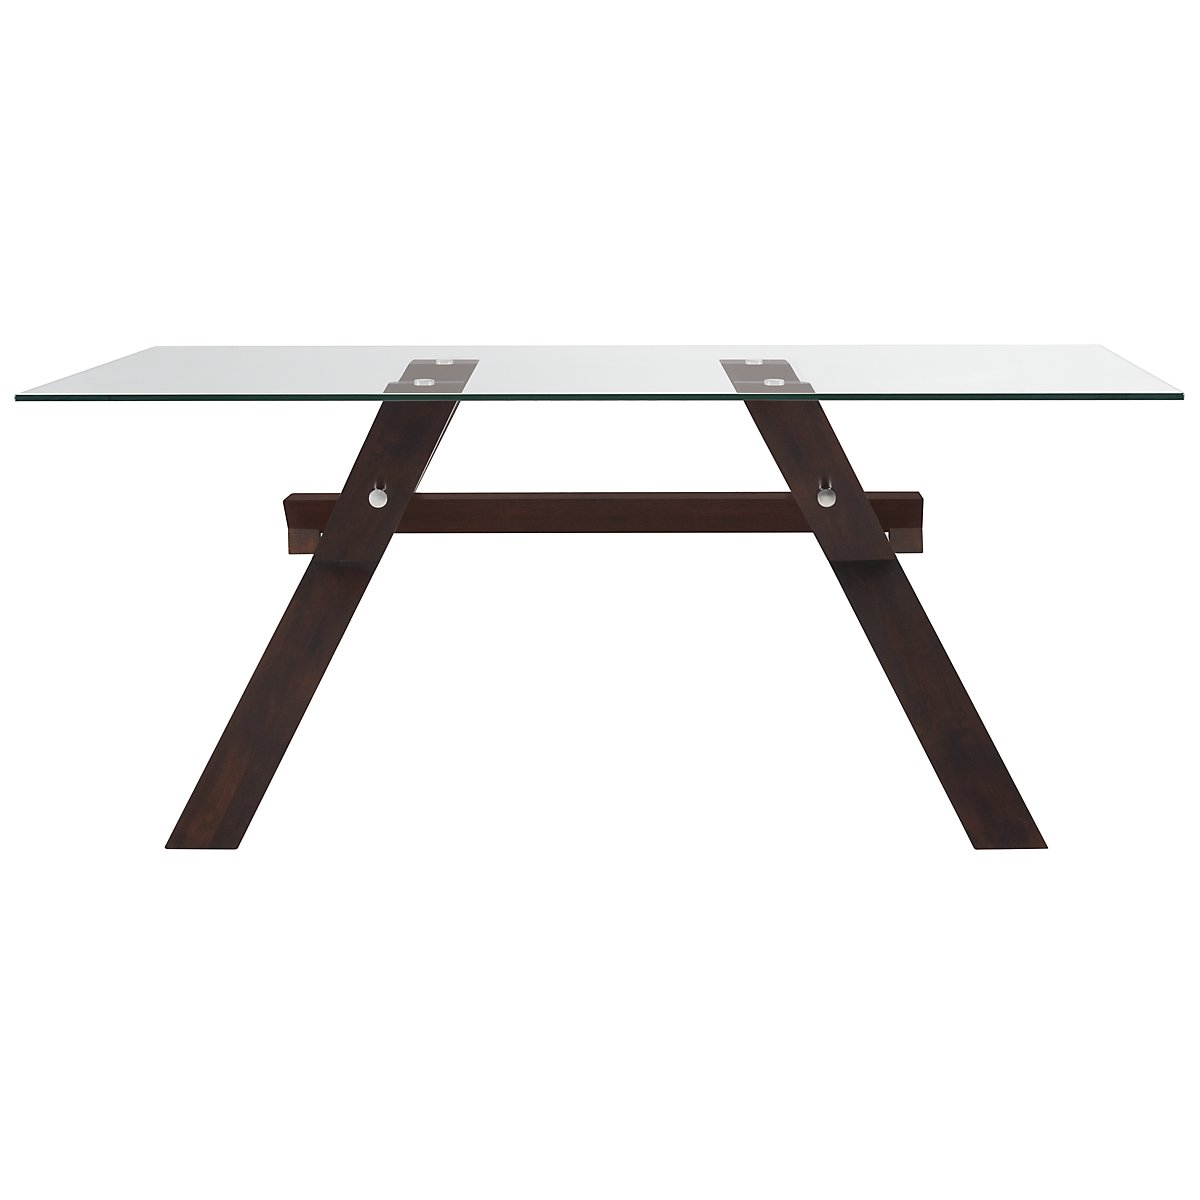 "Berkley Dark Tone 72"" Rectangular Table"